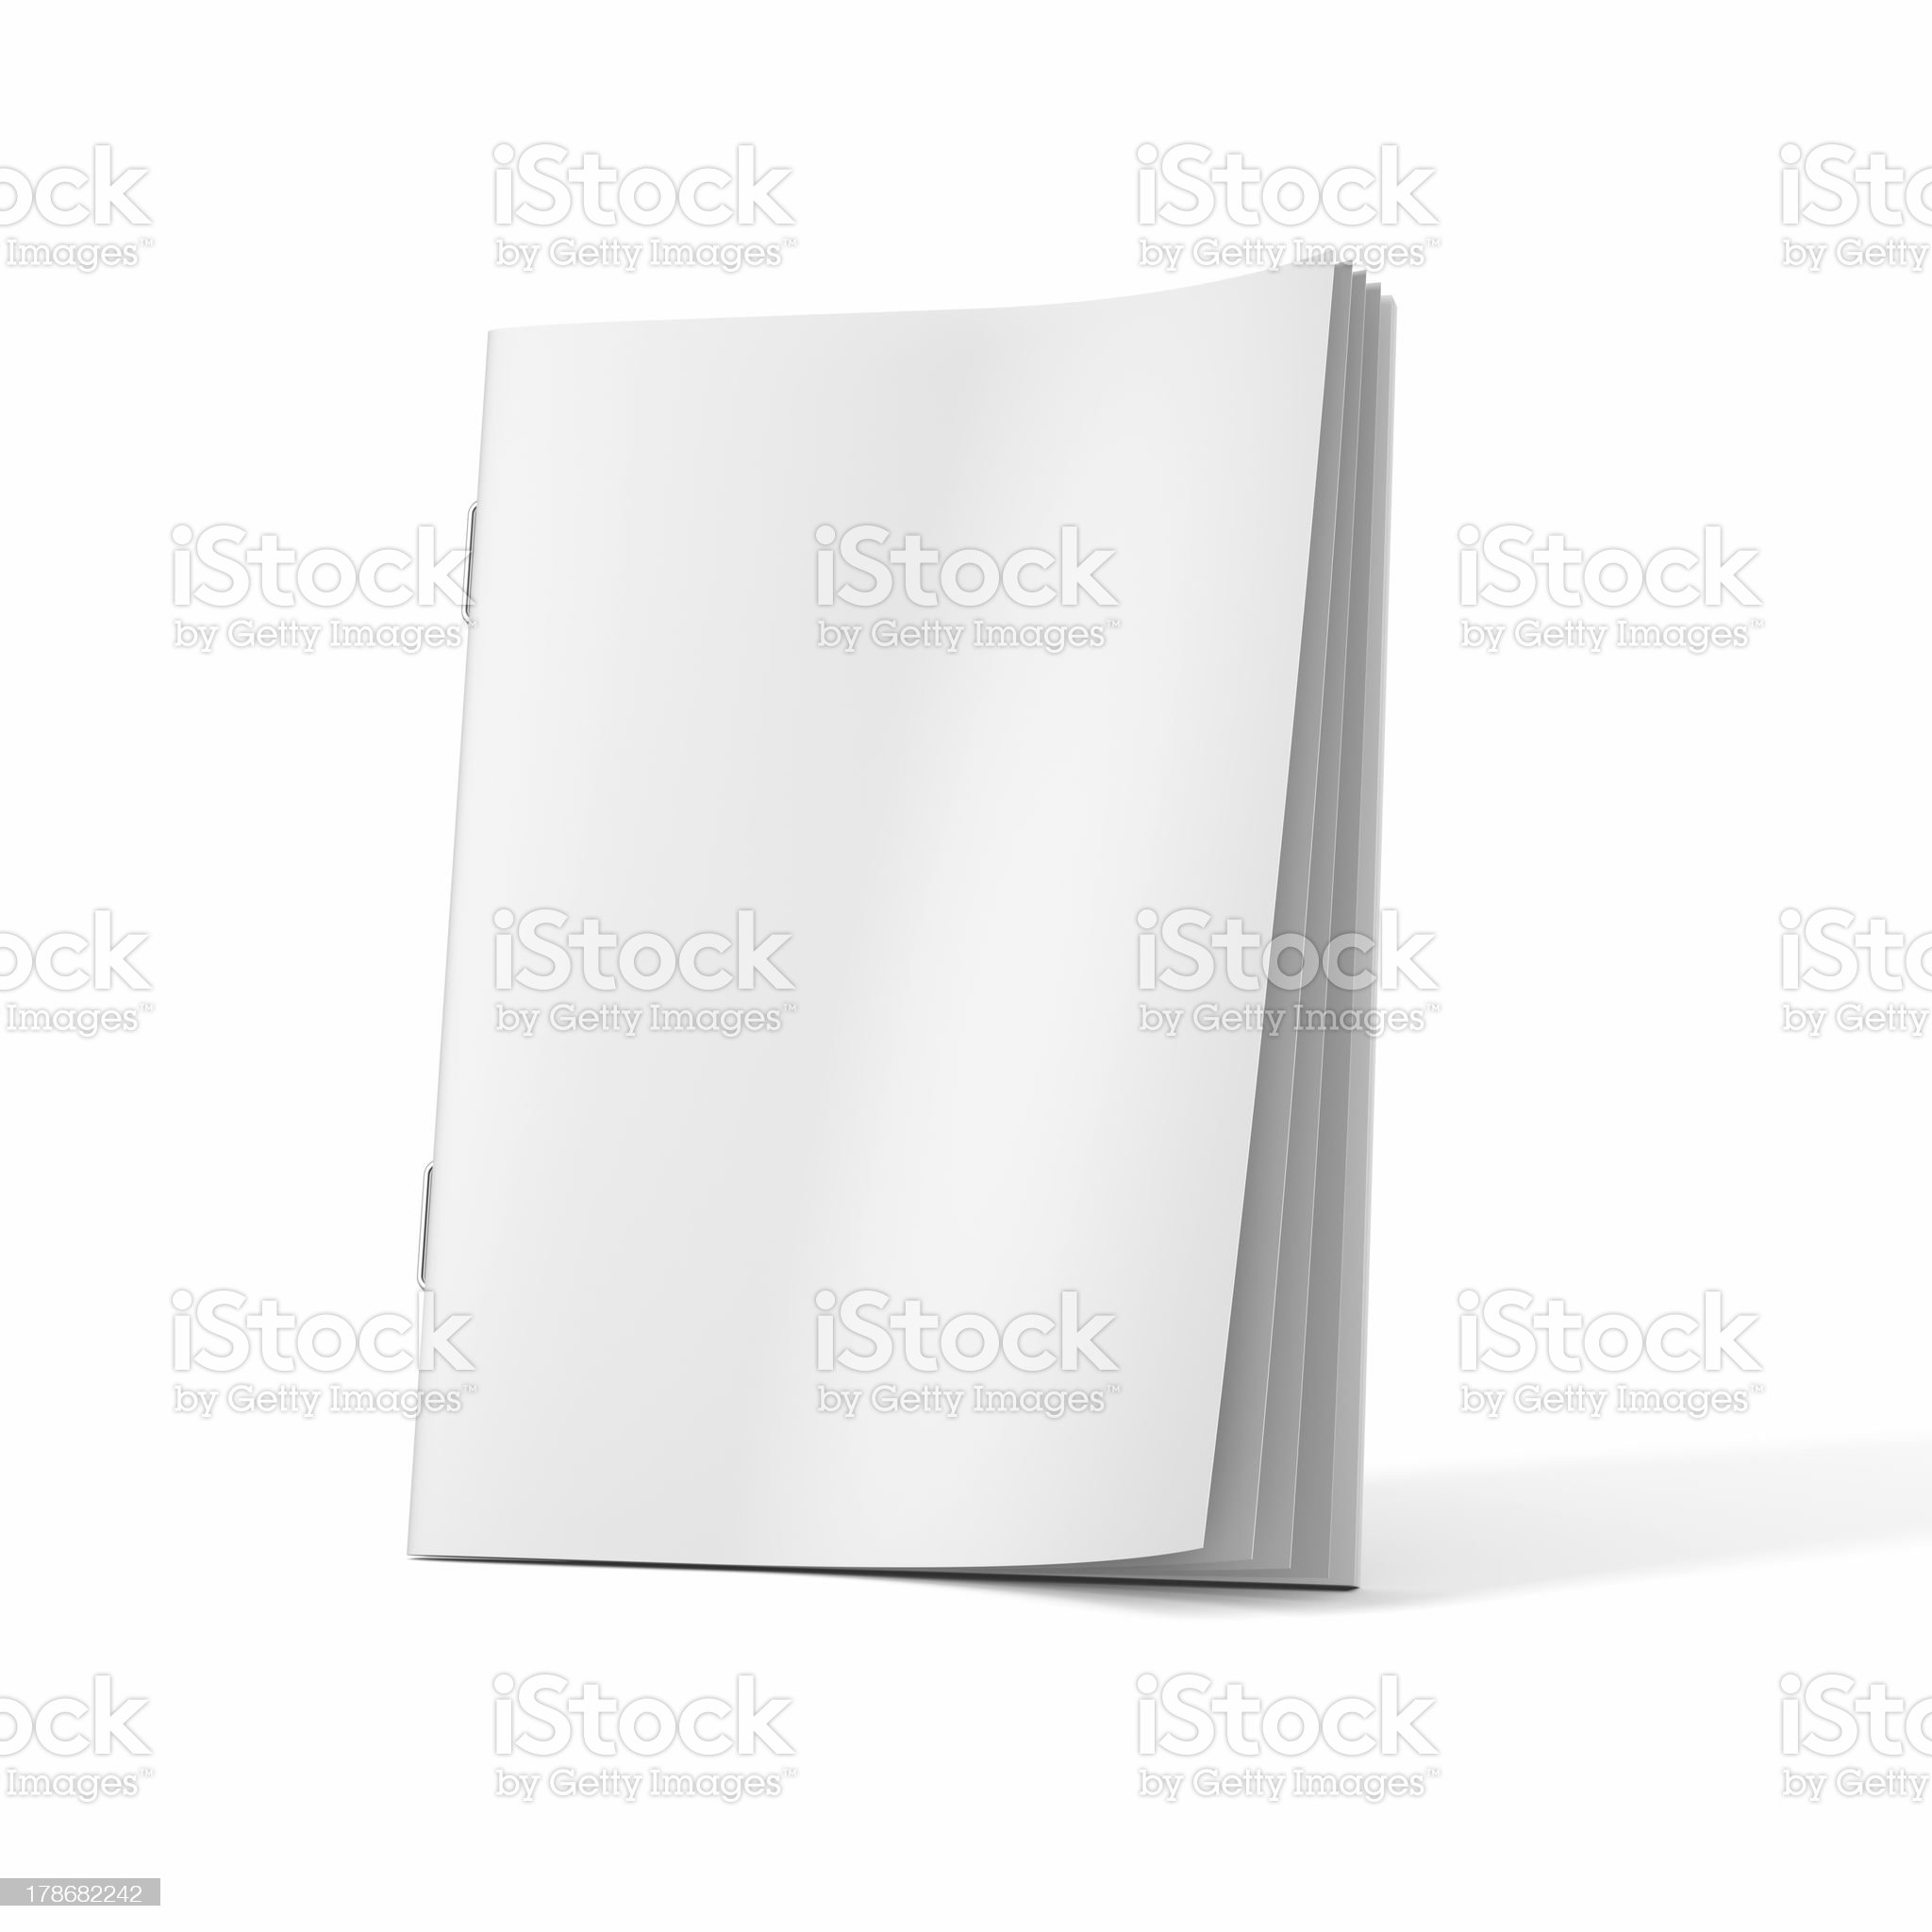 A blank magazine book on a white background royalty-free stock photo